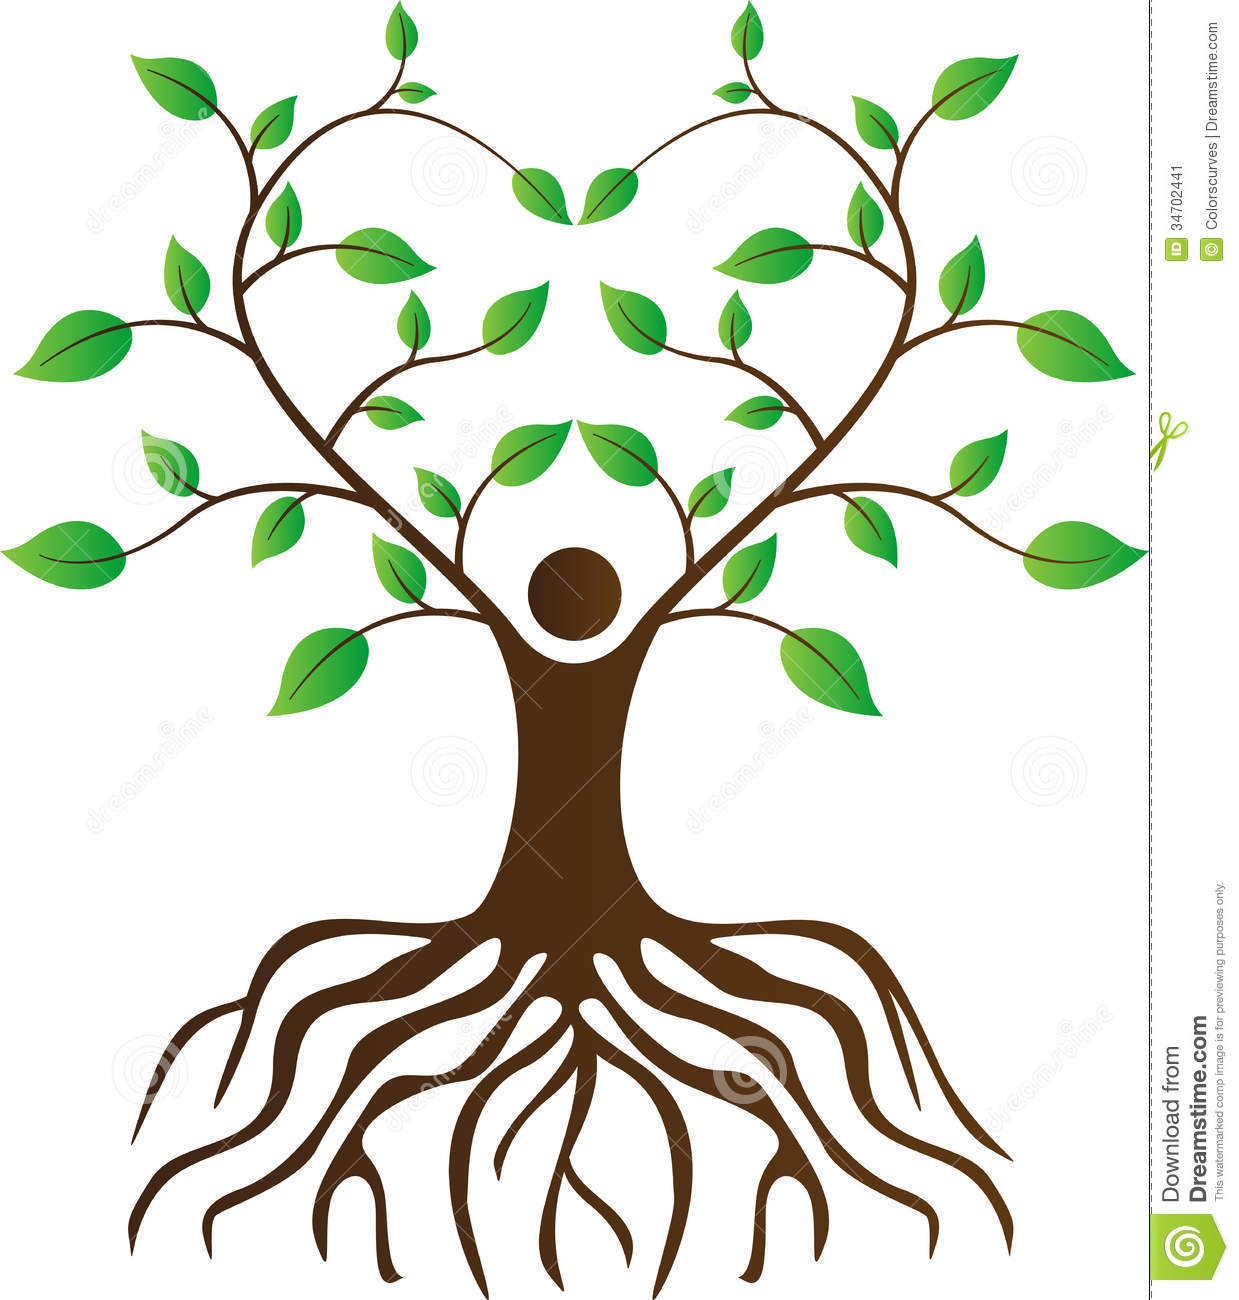 clipart family tree with roots - photo #6